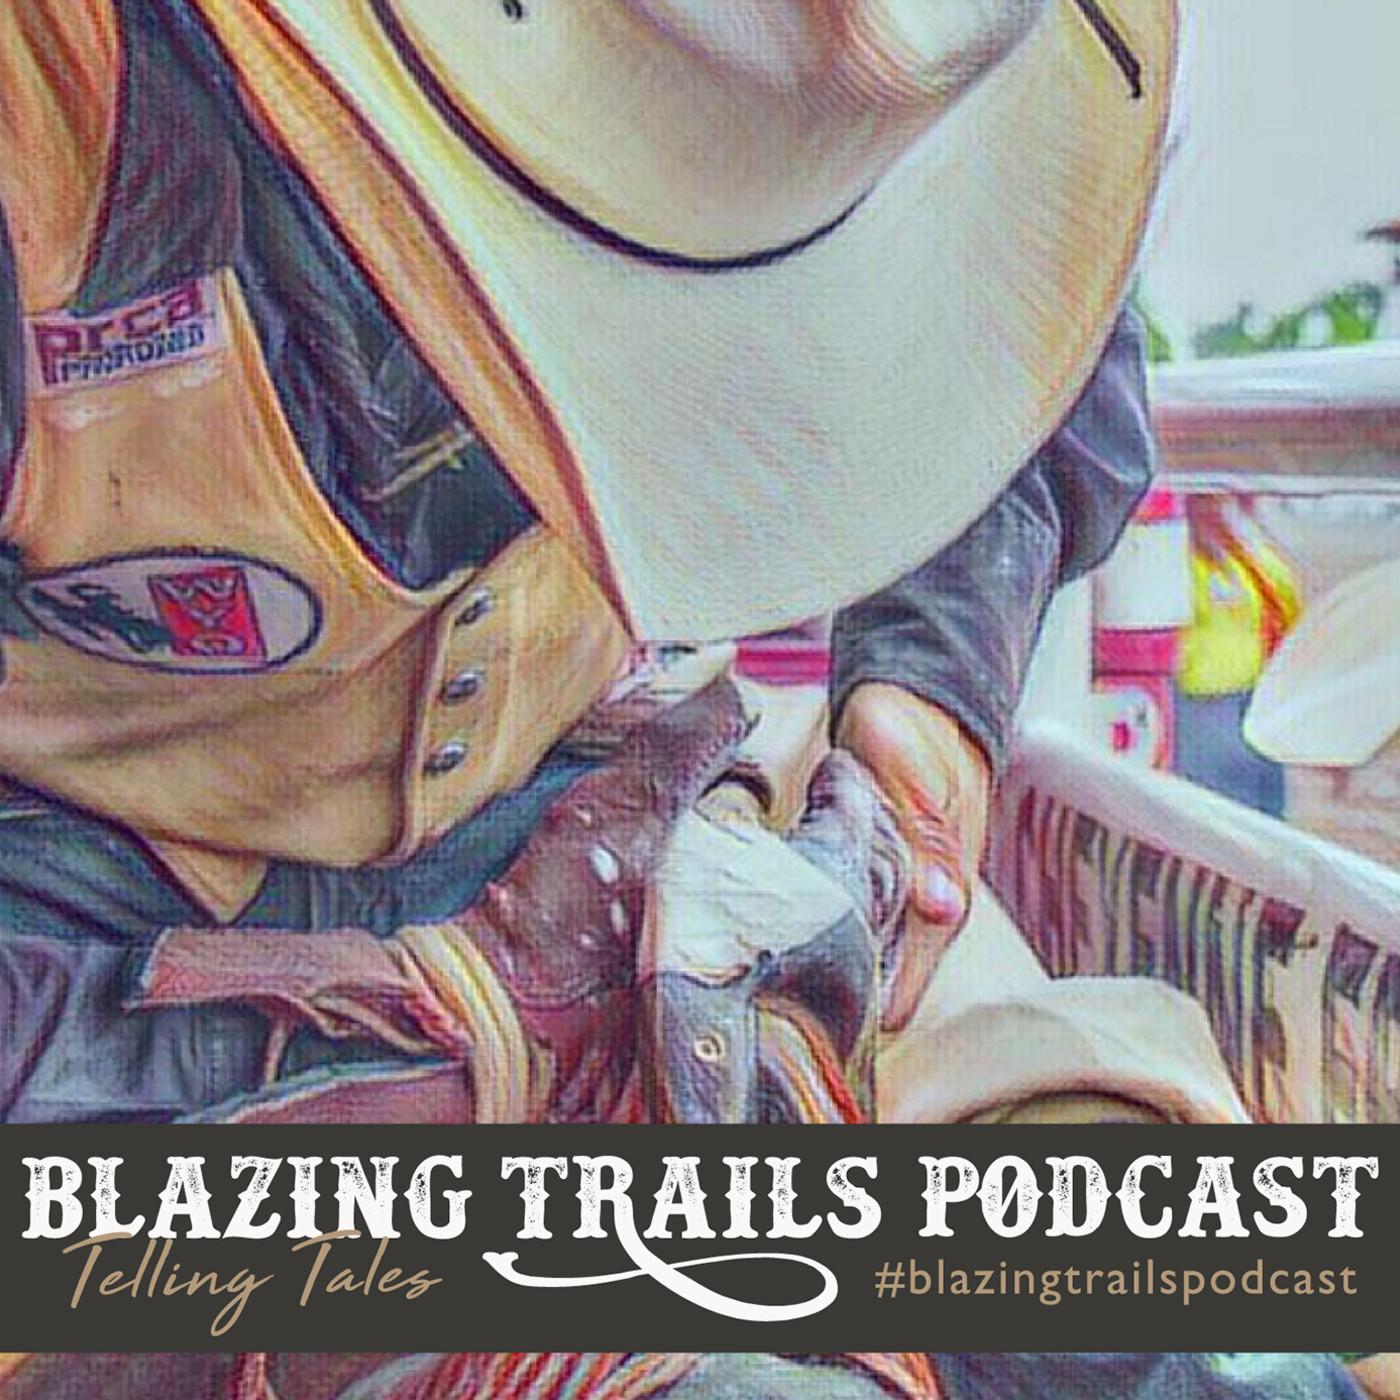 Blazing Trails (podcast) - Devan Reilly | Listen Notes